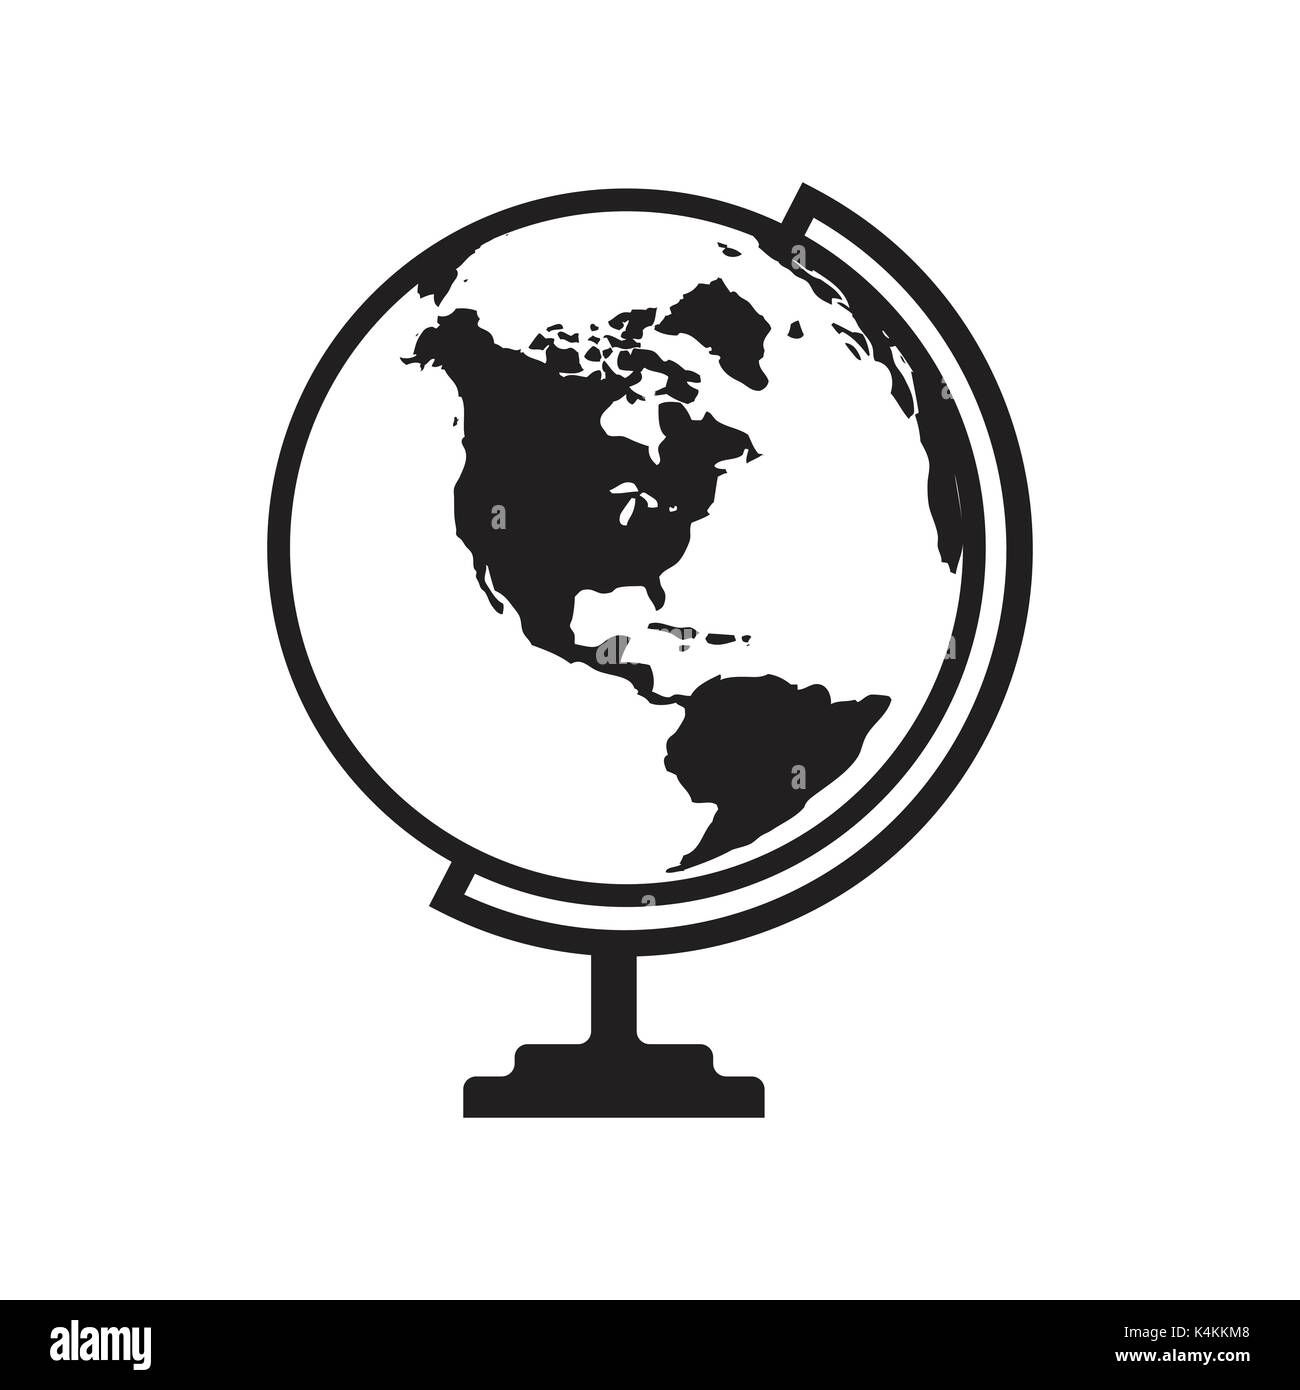 Globe icon vector with america map flat icon isolated on the white globe icon vector with america map flat icon isolated on the white stock vector art illustration vector image 157784488 alamy gumiabroncs Image collections